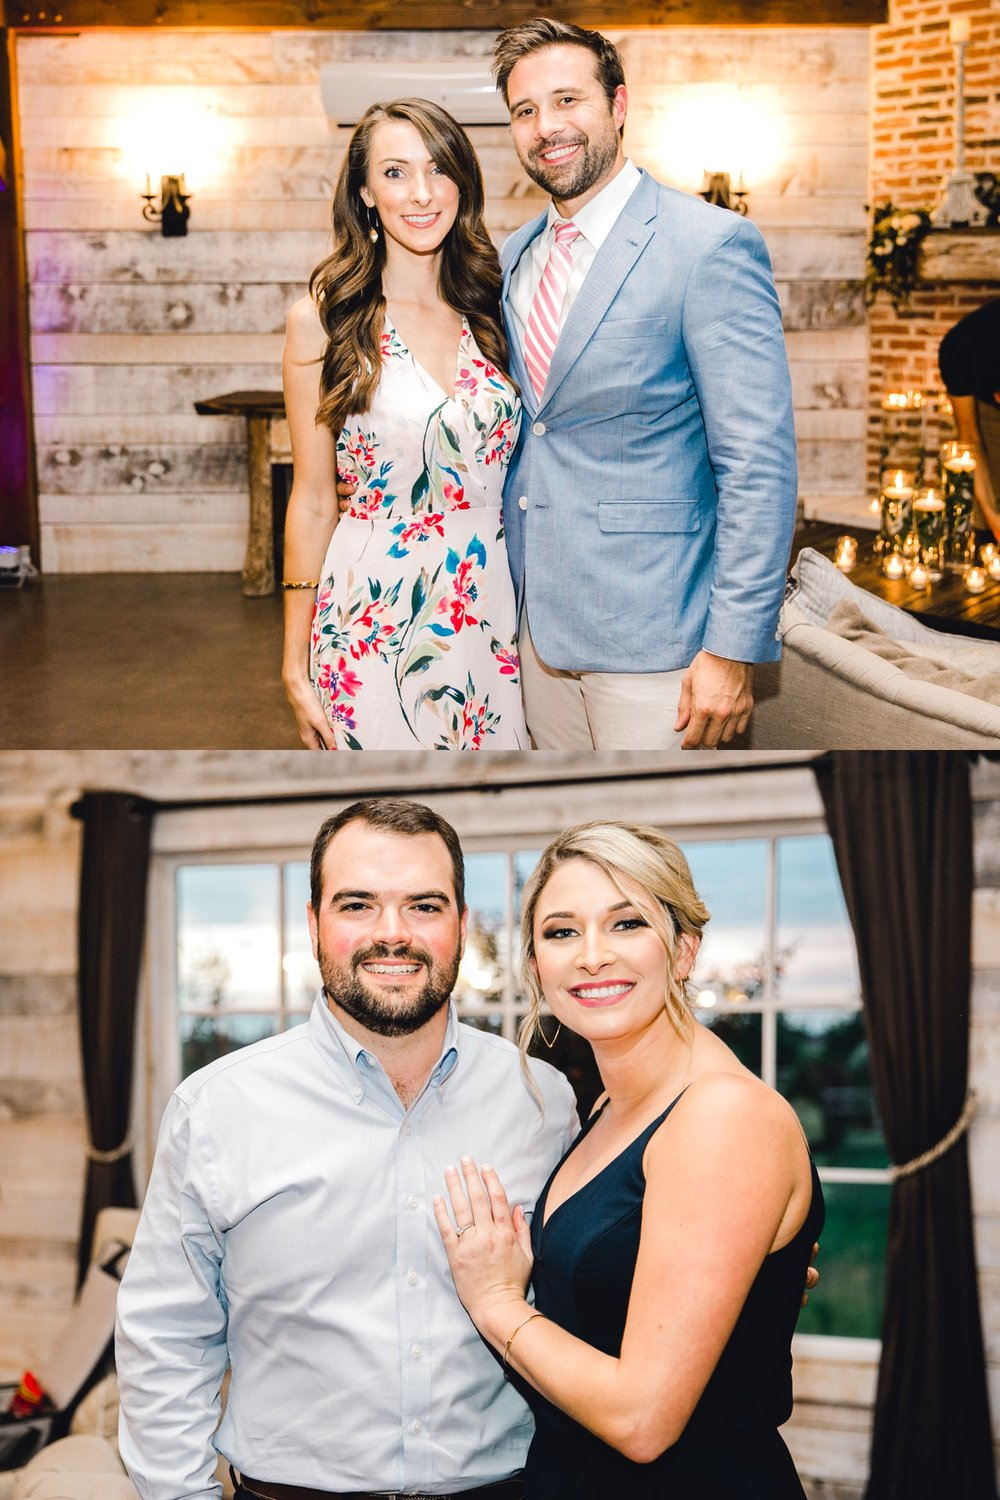 KAITLYN_AND_ZACHARY_HUNT_ALLEEJ_LUBBOCK_WEDDING_PHOTOGRAPHER_EBERLEY_BROOKS_EVENTS_0211.jpg